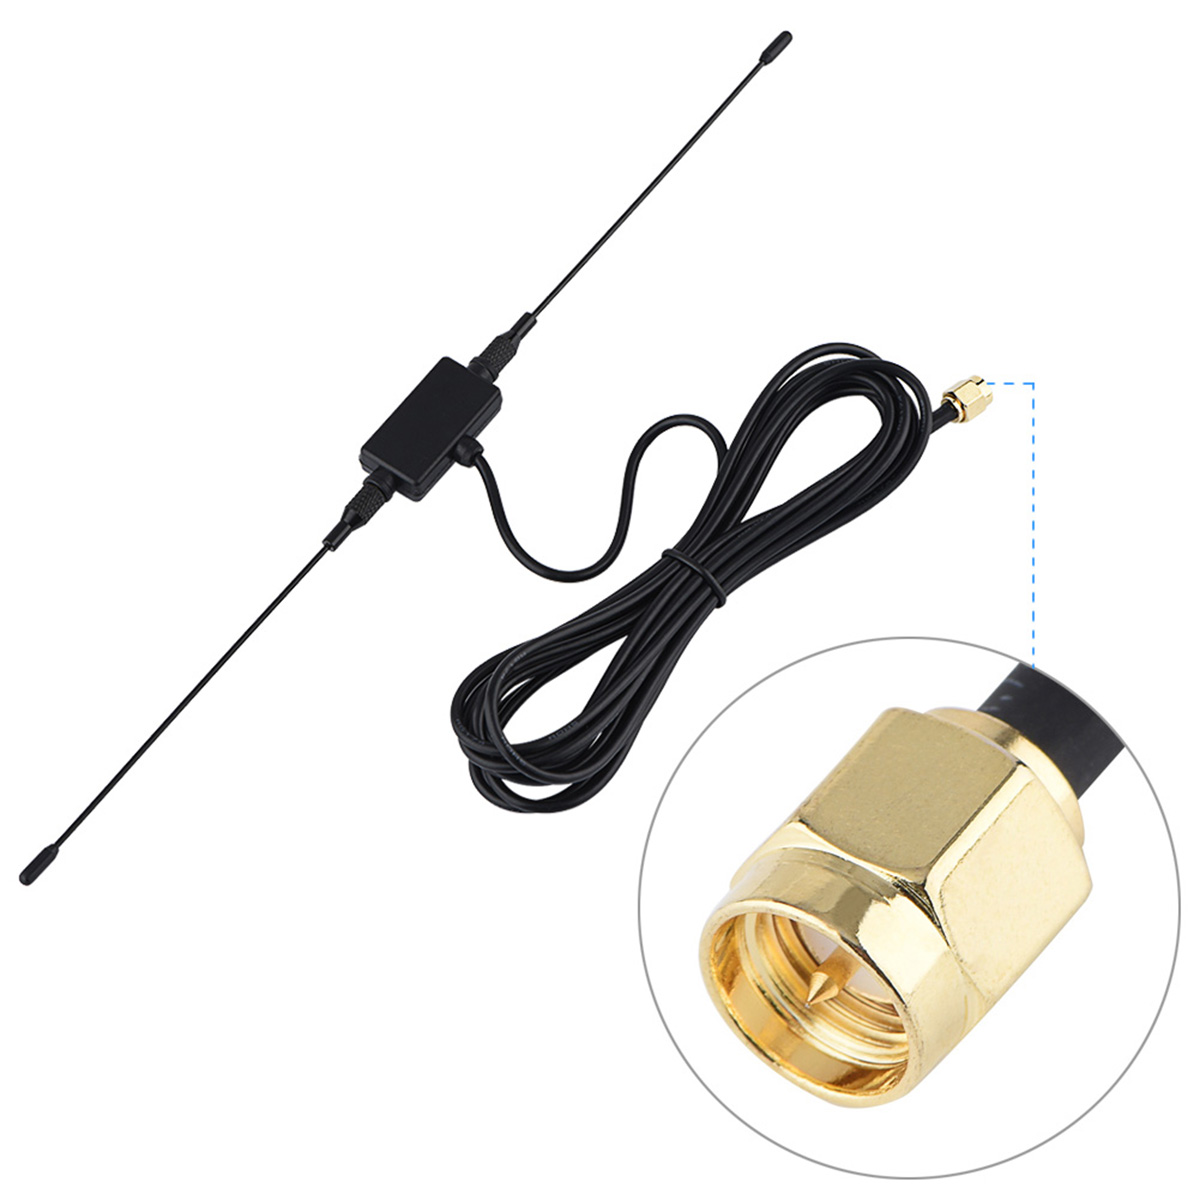 SOONHUA 118in 433MHZ GSM GPRS SMA Male Plug Horn Antenna Signal Amplifier SMA Horn Antenna Cable SMA Male Plug Horn Antennas(China)